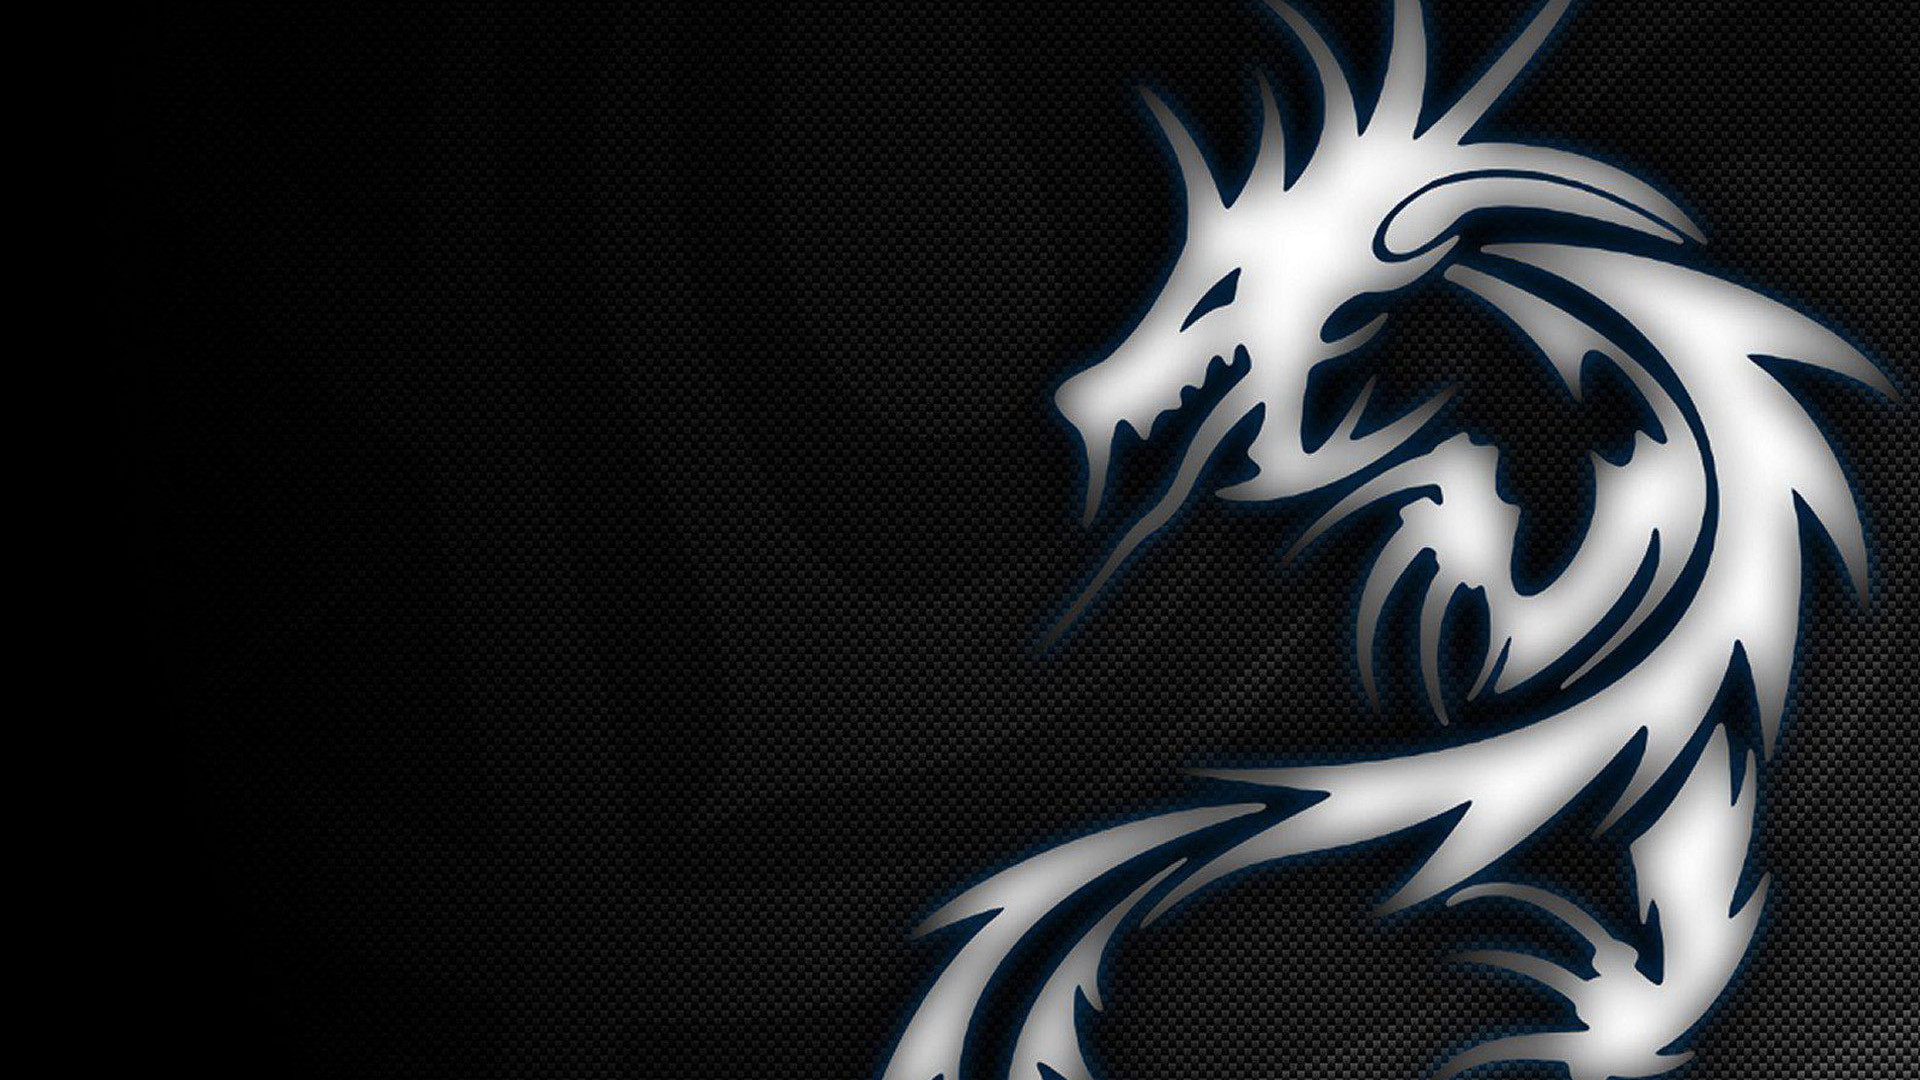 Hd Wallpapers Msi Dragon Desktop Background 1920 X 1080 1097 Kb Jpeg .